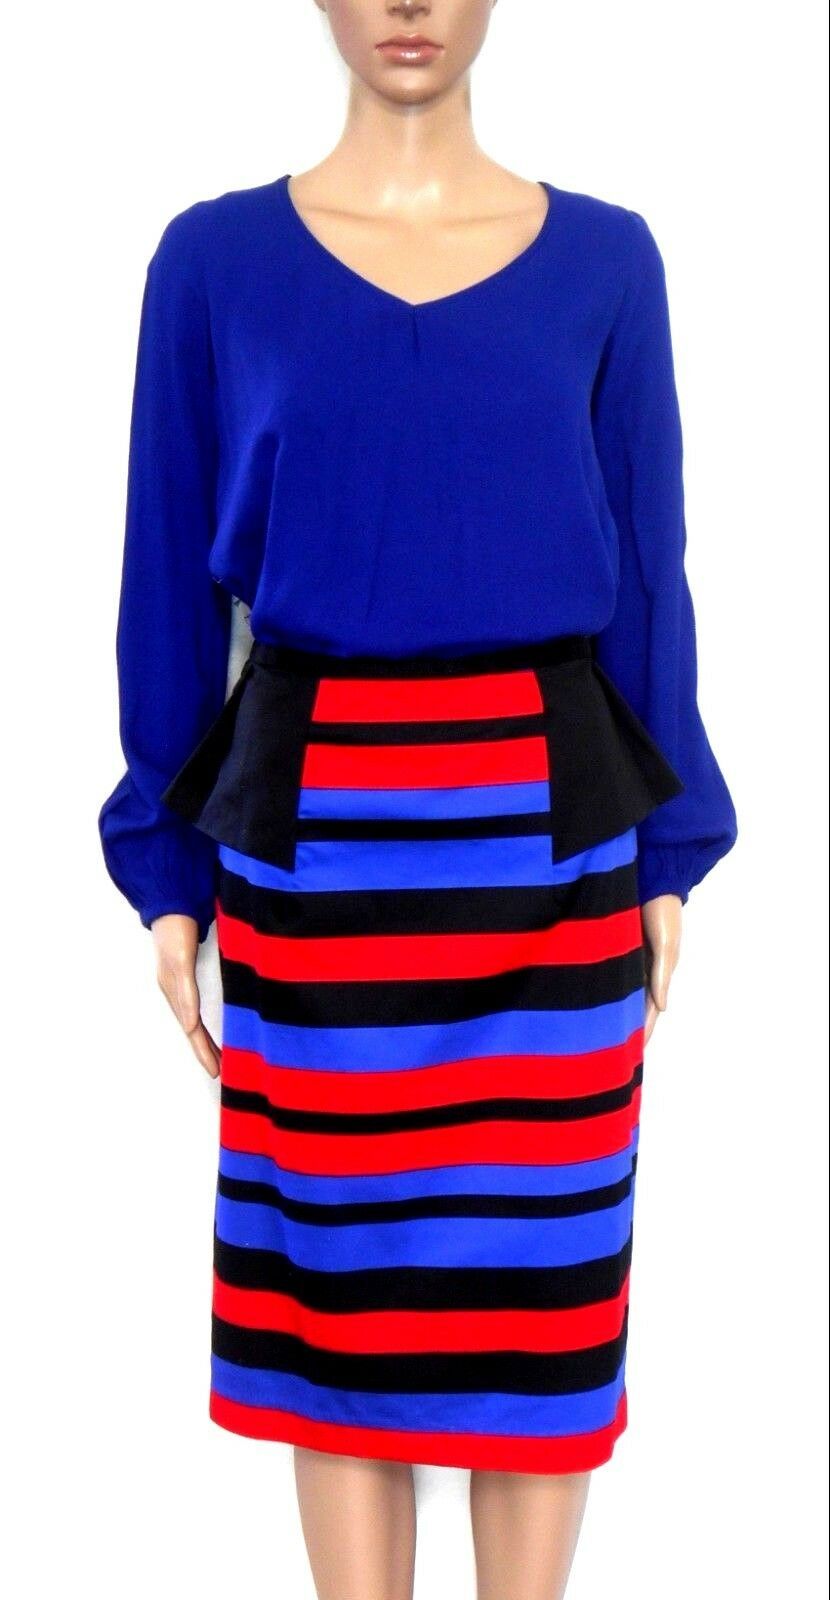 Queenspark skirt, black/red/blue - with waist pleats, sz. 12  NWOT